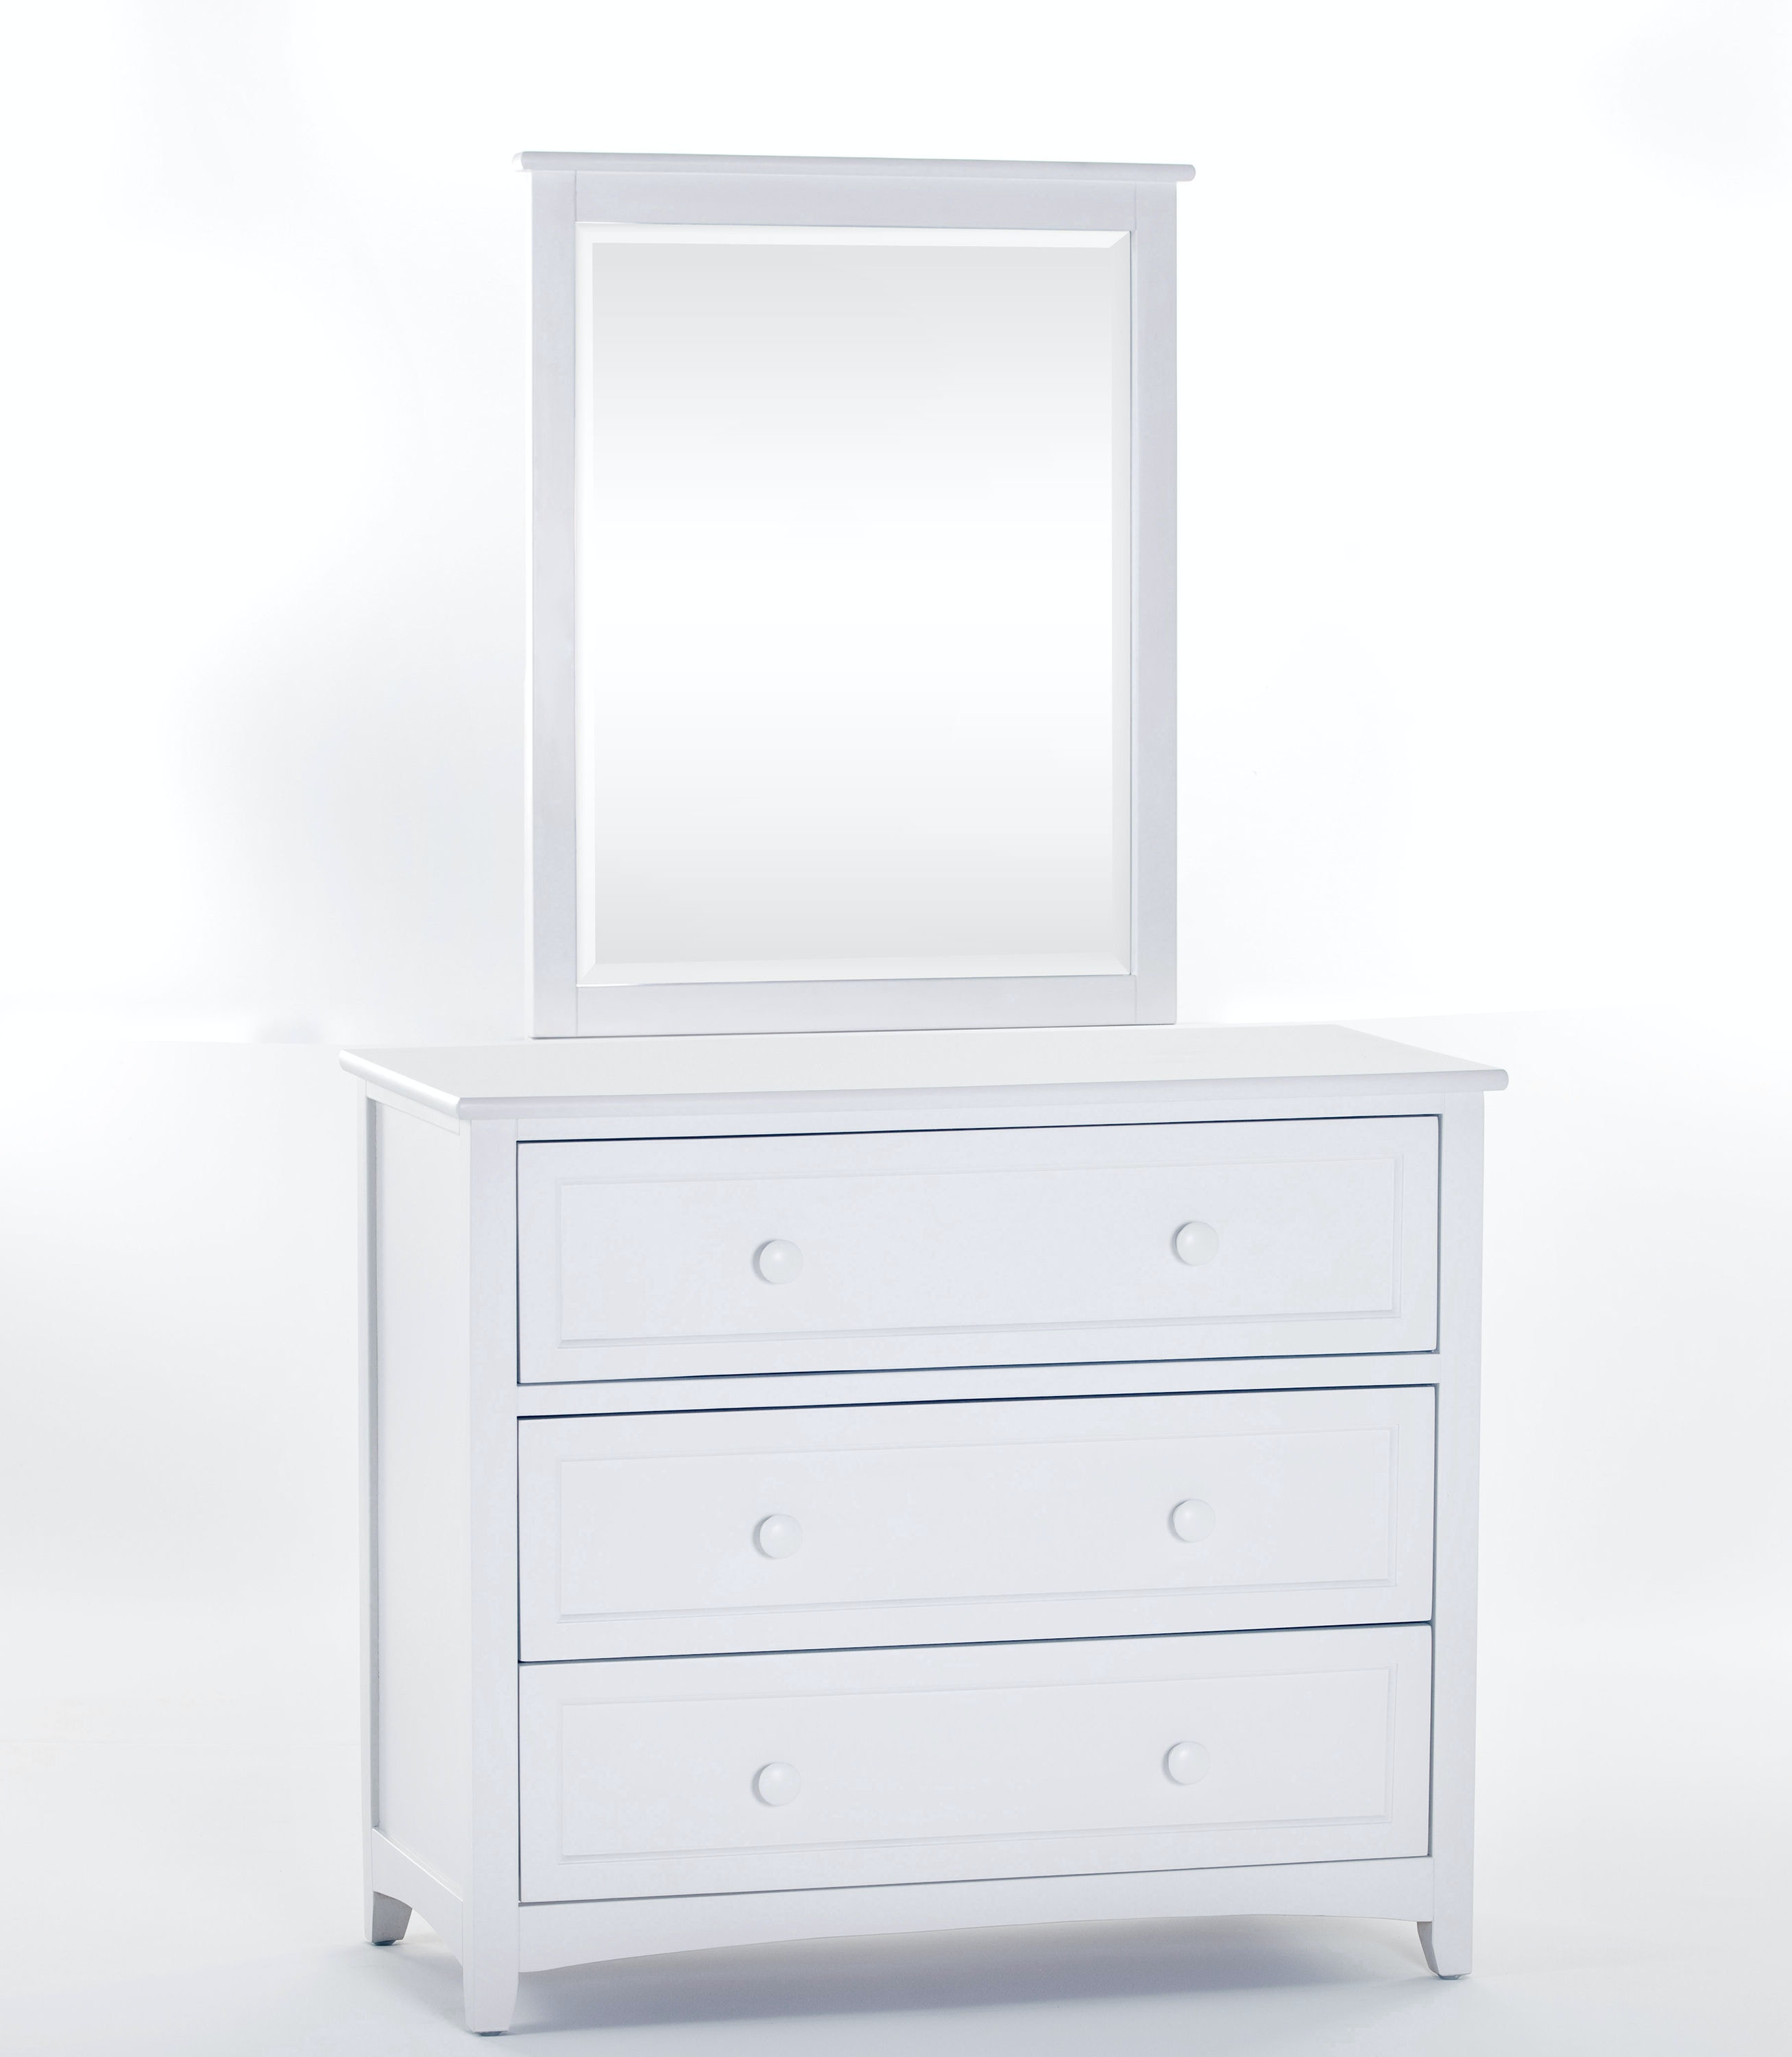 Hillsdale Kids And Teen School House Mirror White Sold With 7500